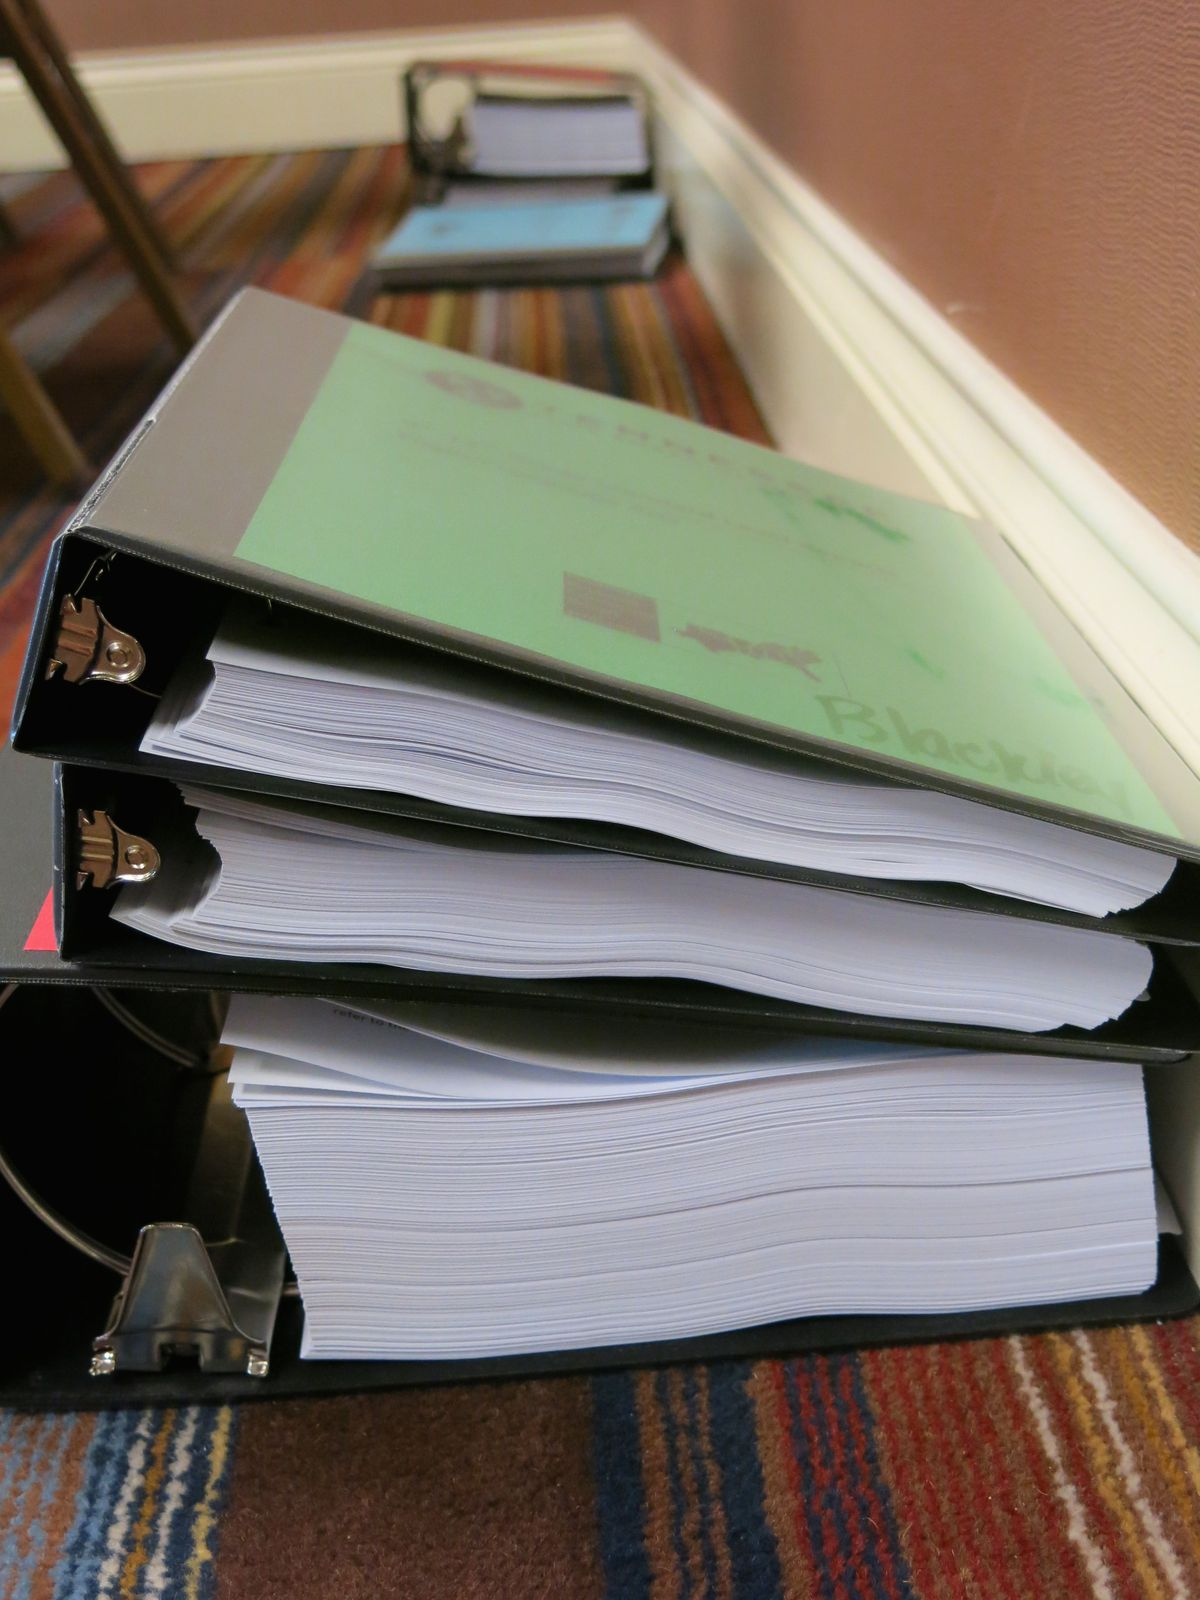 Large notebooks filled with public review data and feedback awaited each member of the standards review committee.